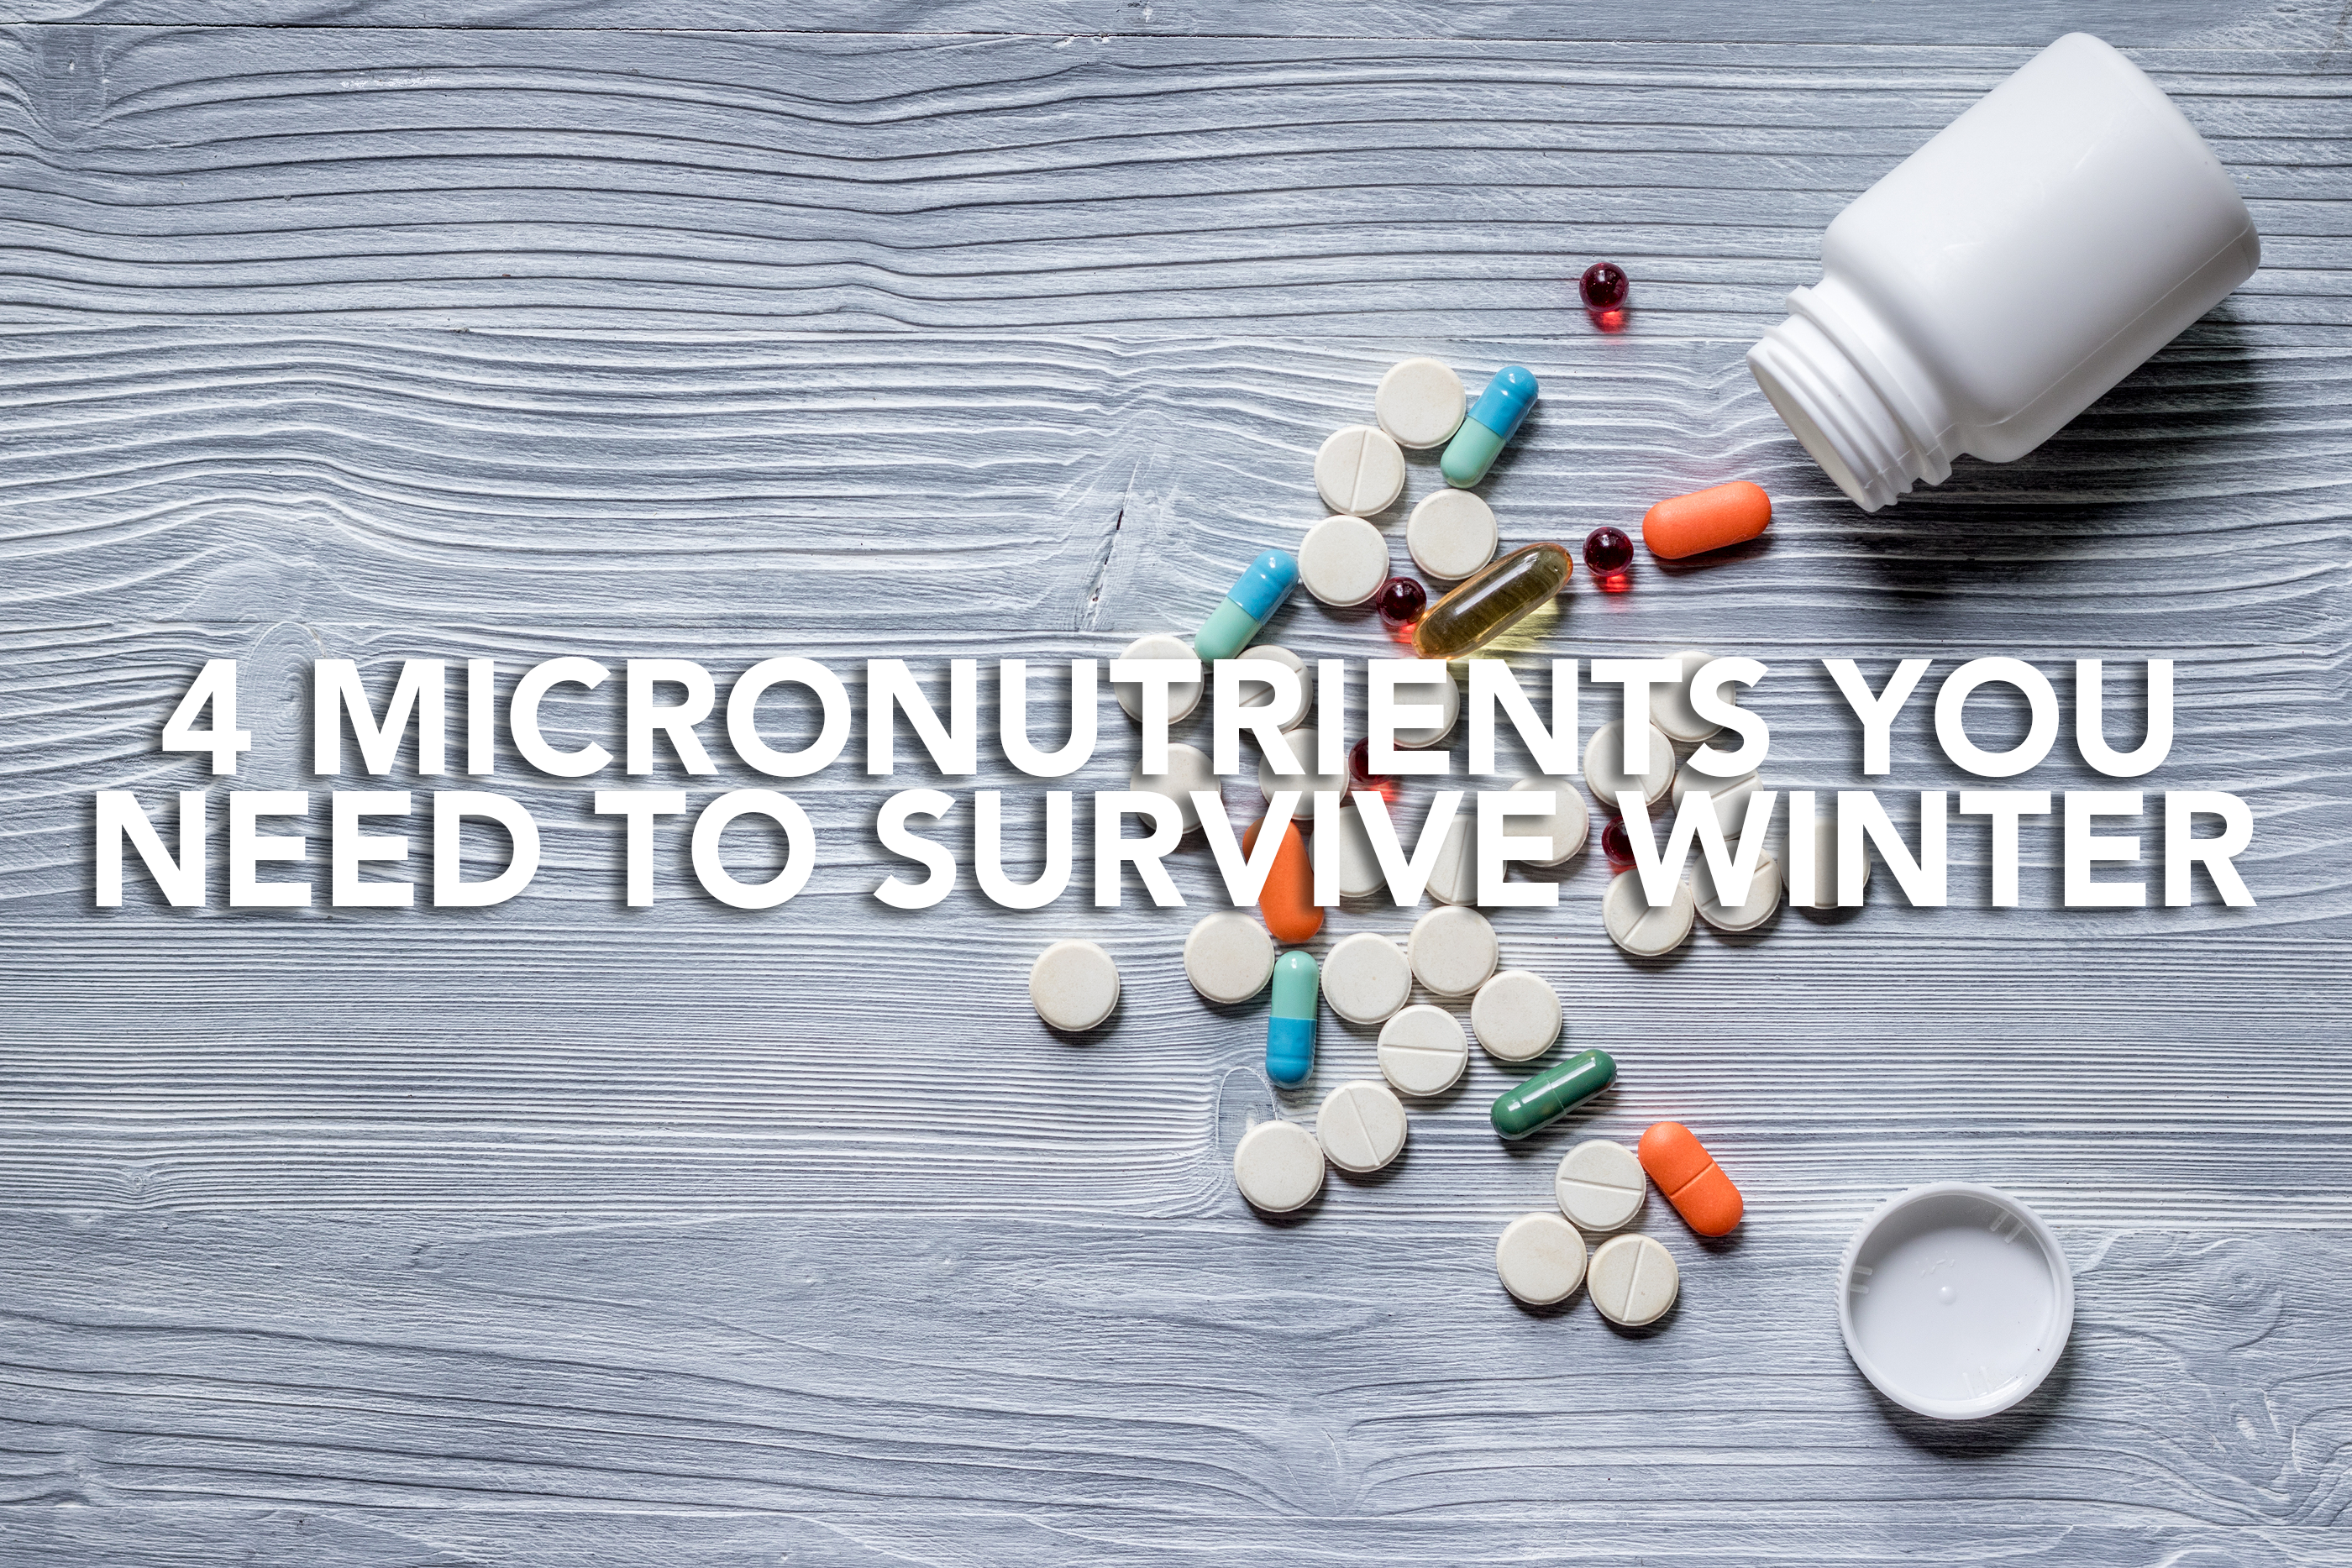 4 Micronutrients You Need to Survive Winter